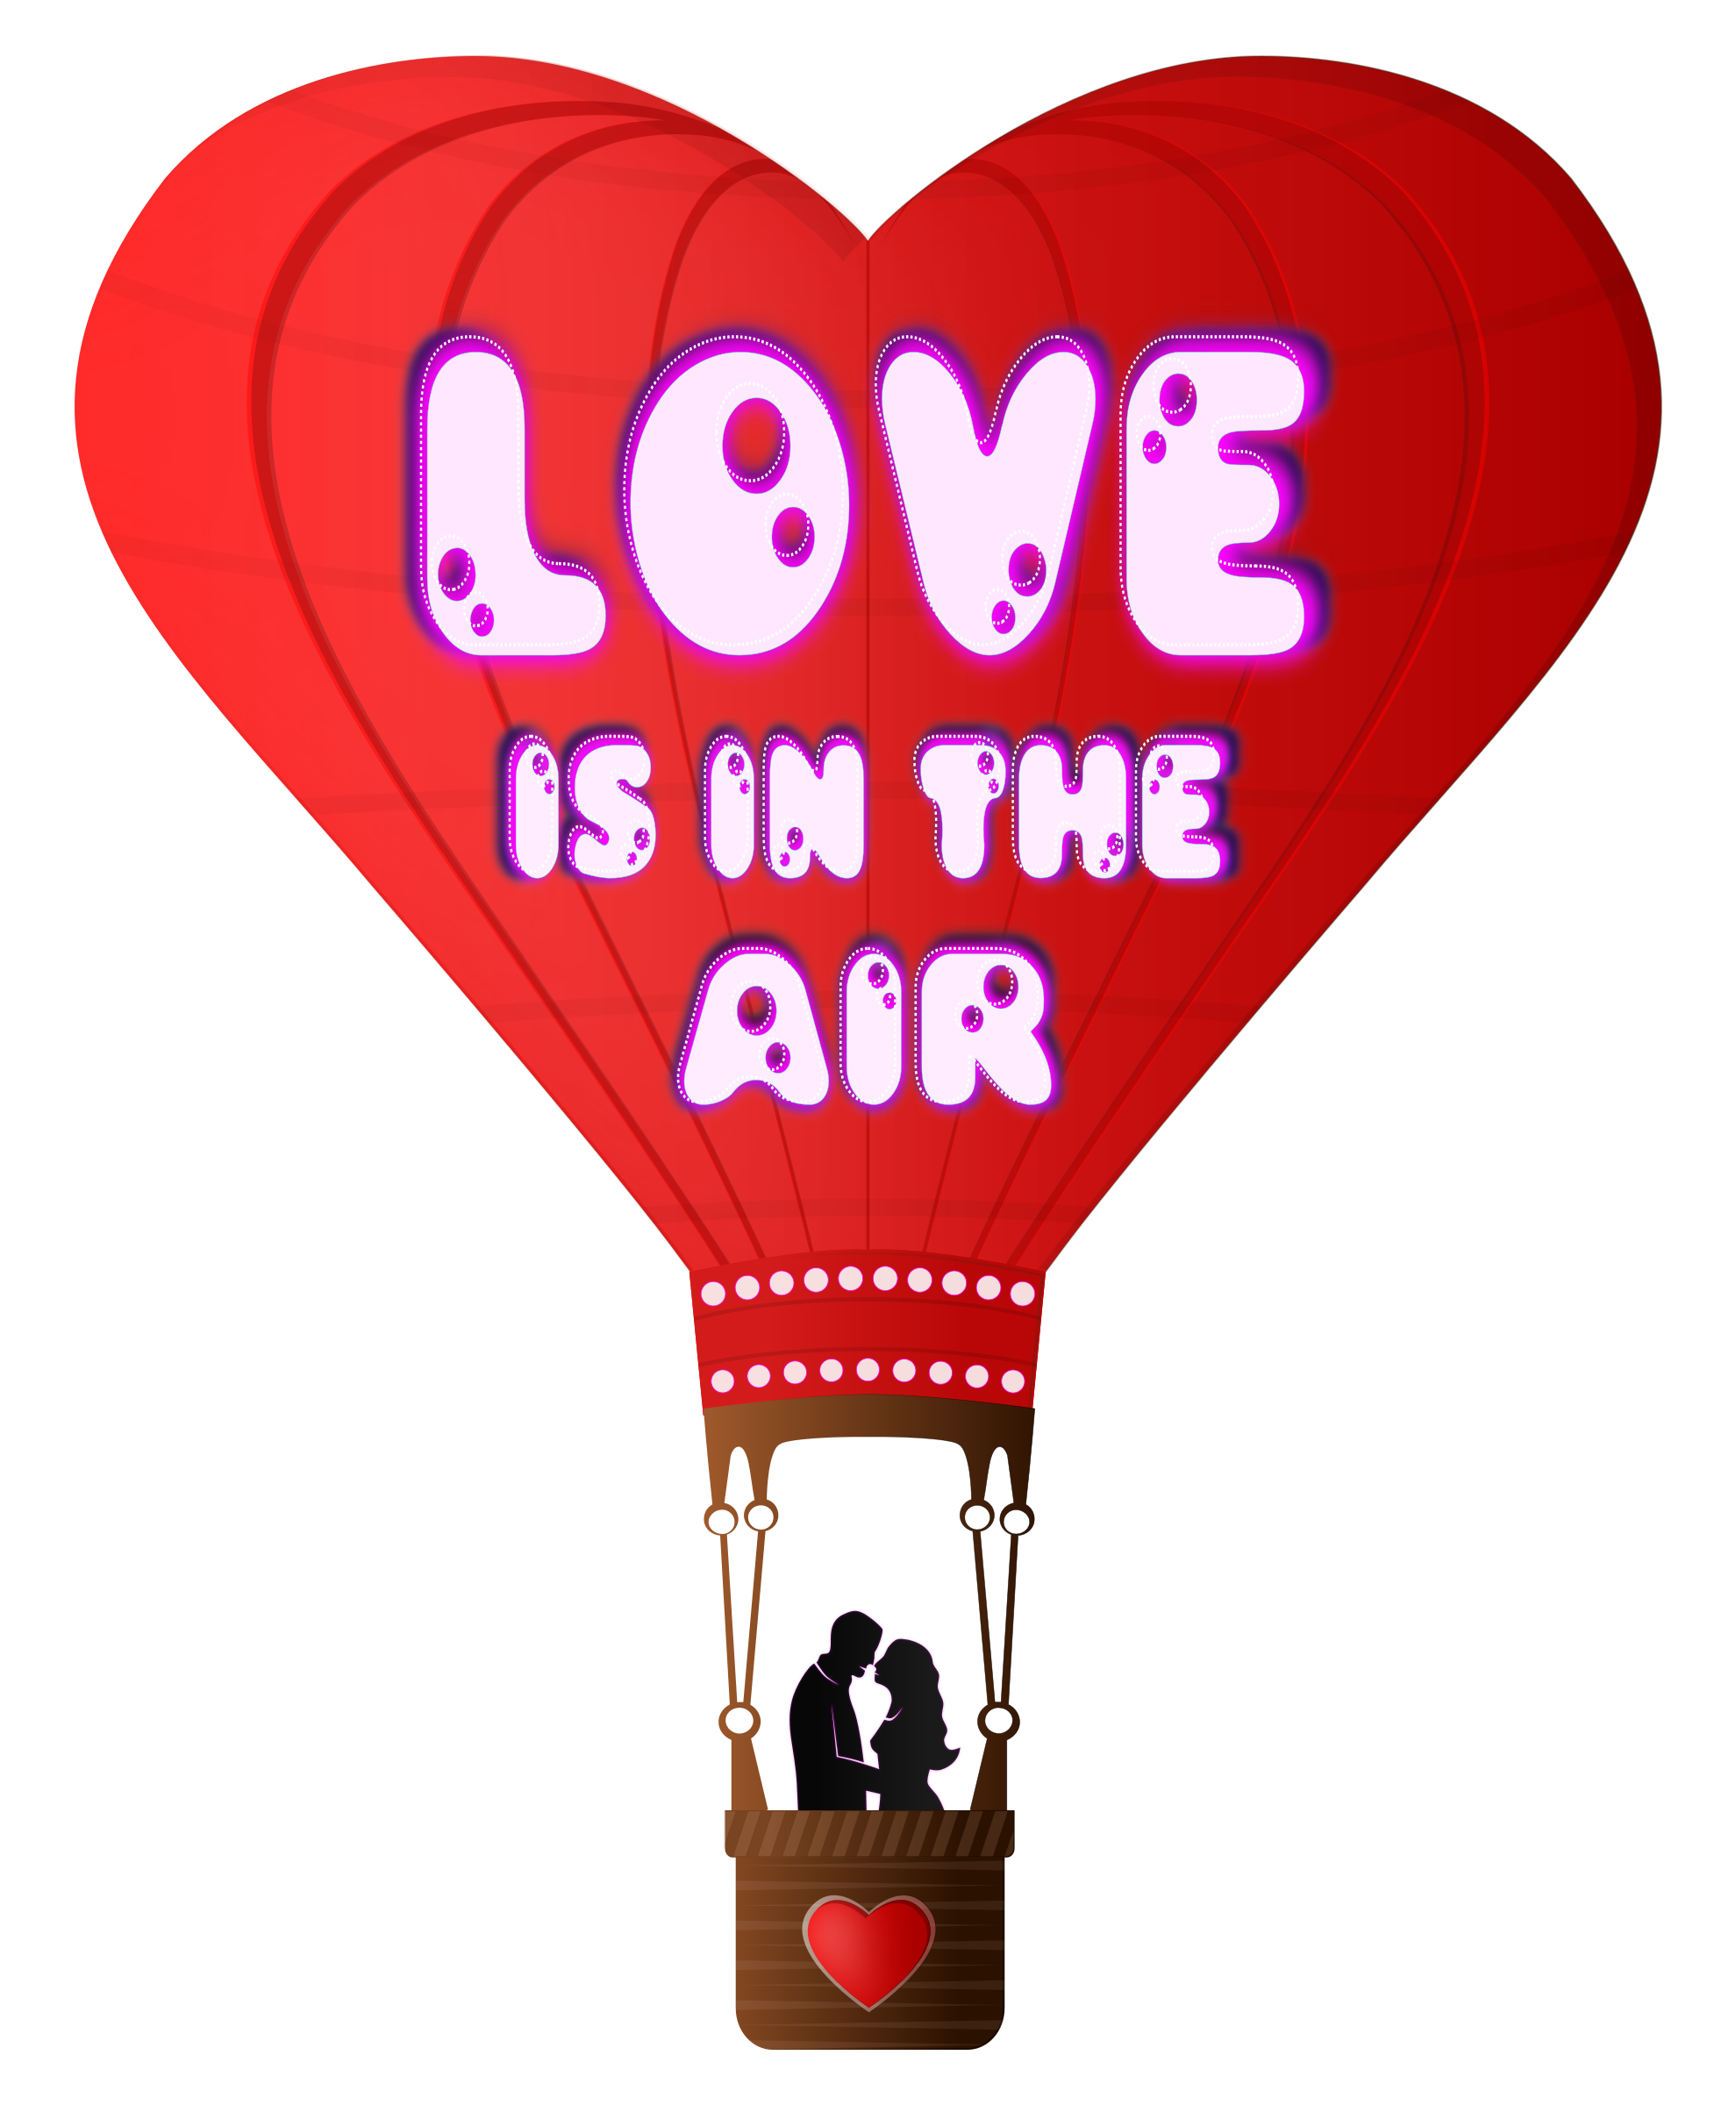 Best friends heart clipart image transparent Clipart - Valentines Day Love Is In The Air image transparent